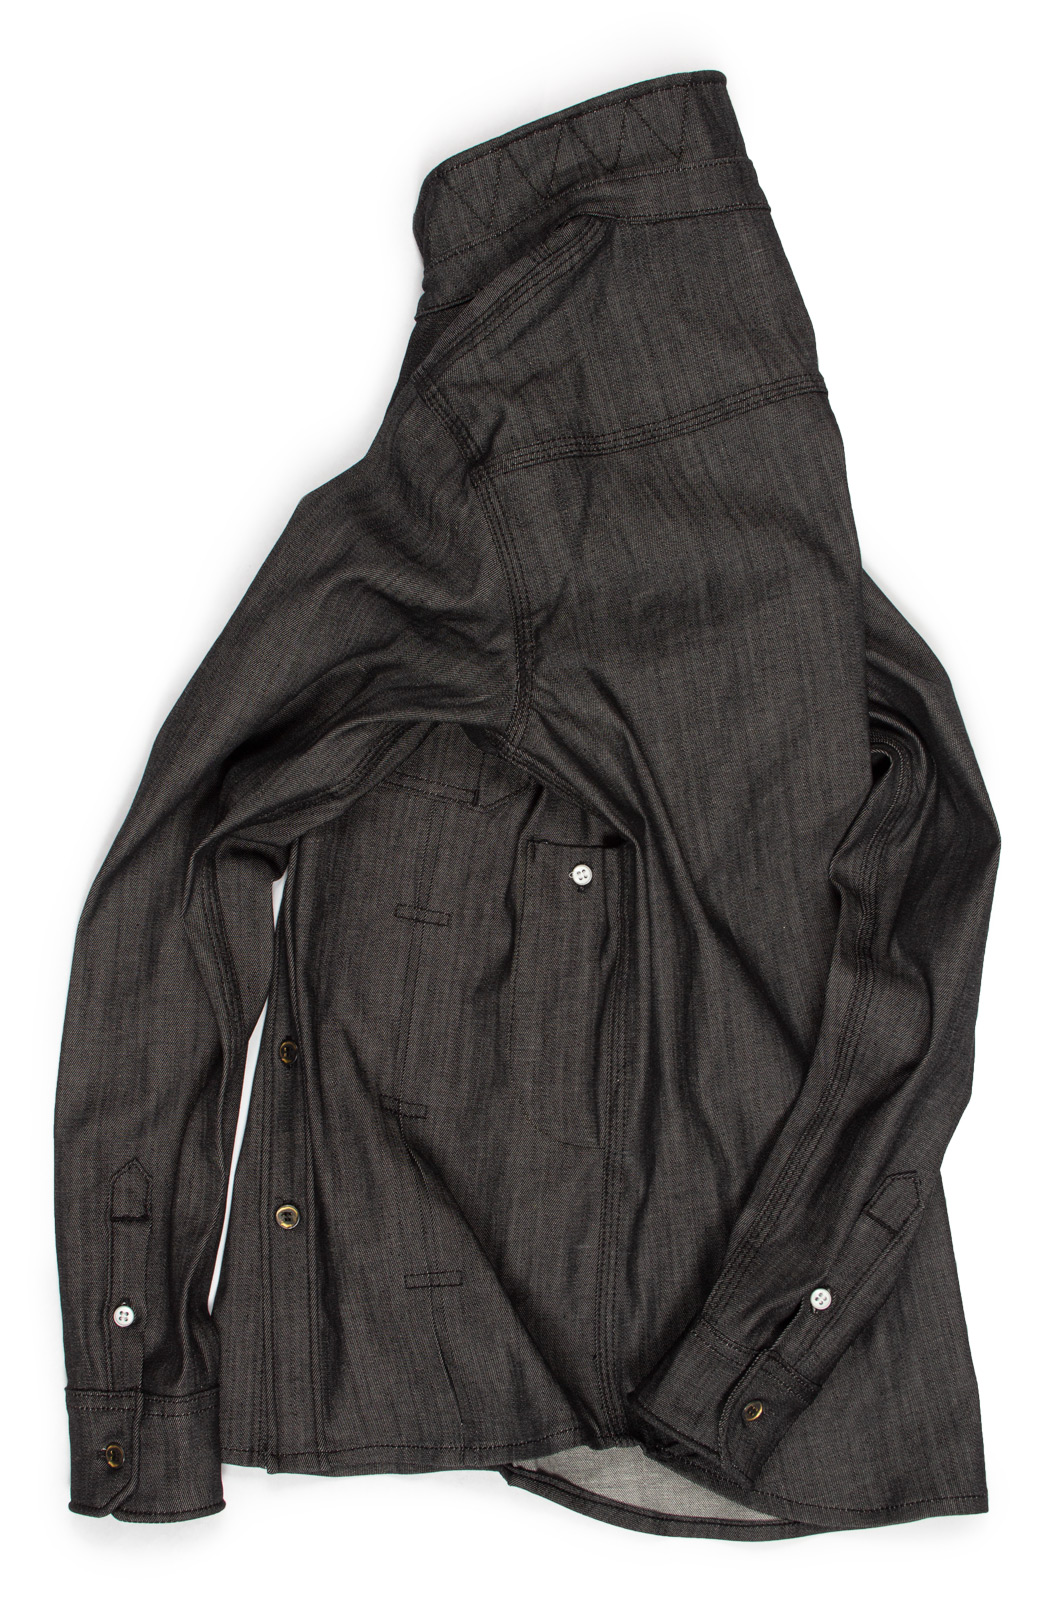 Rear view of the handman black raw denim shirt for men